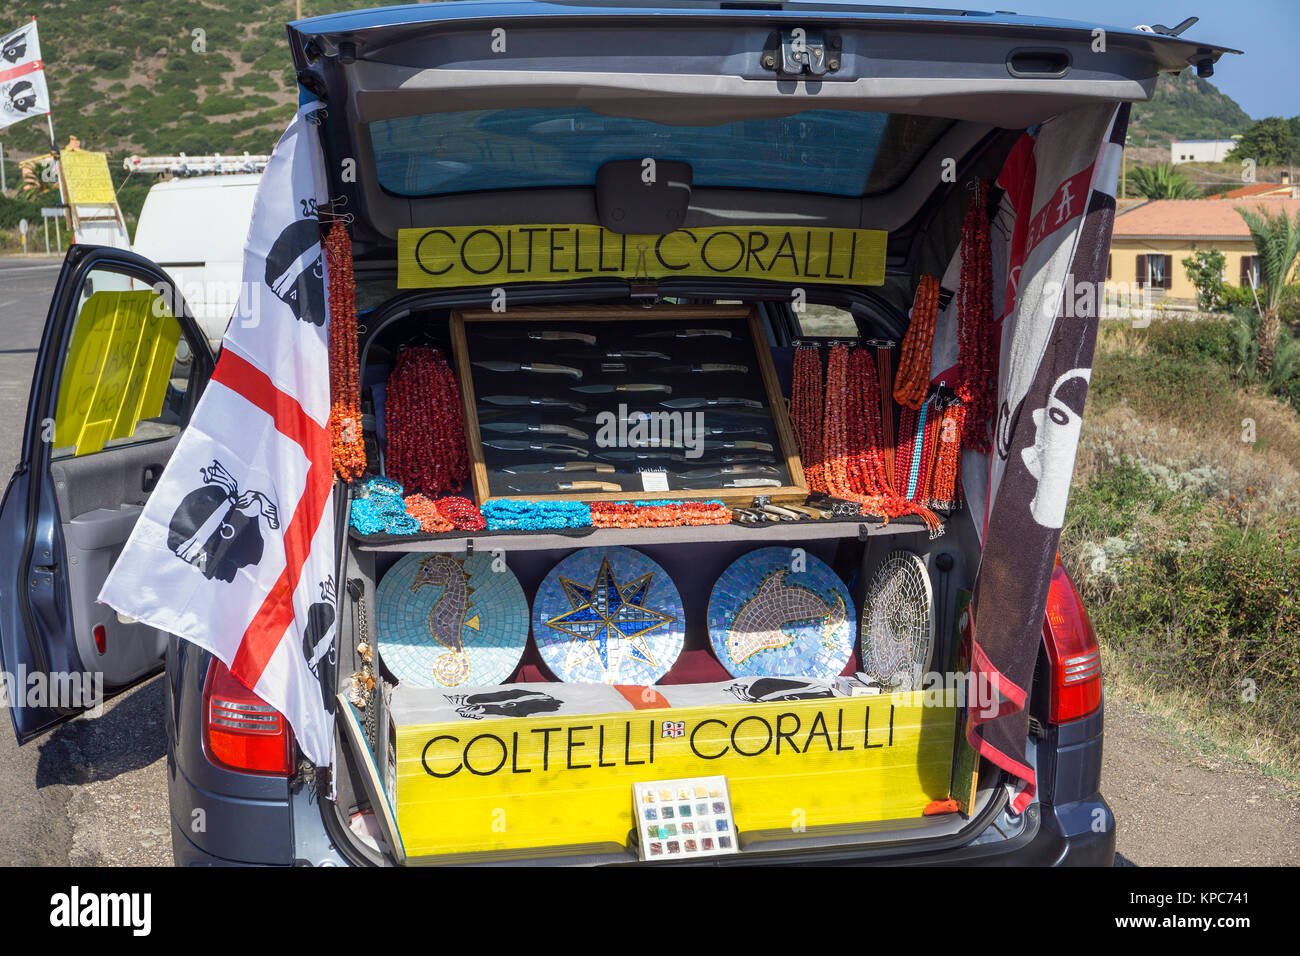 Travelling salesman with shop in car boot offers knifes and neckless made of red corals, Castelsardo, Sardinia island, - Stock Image